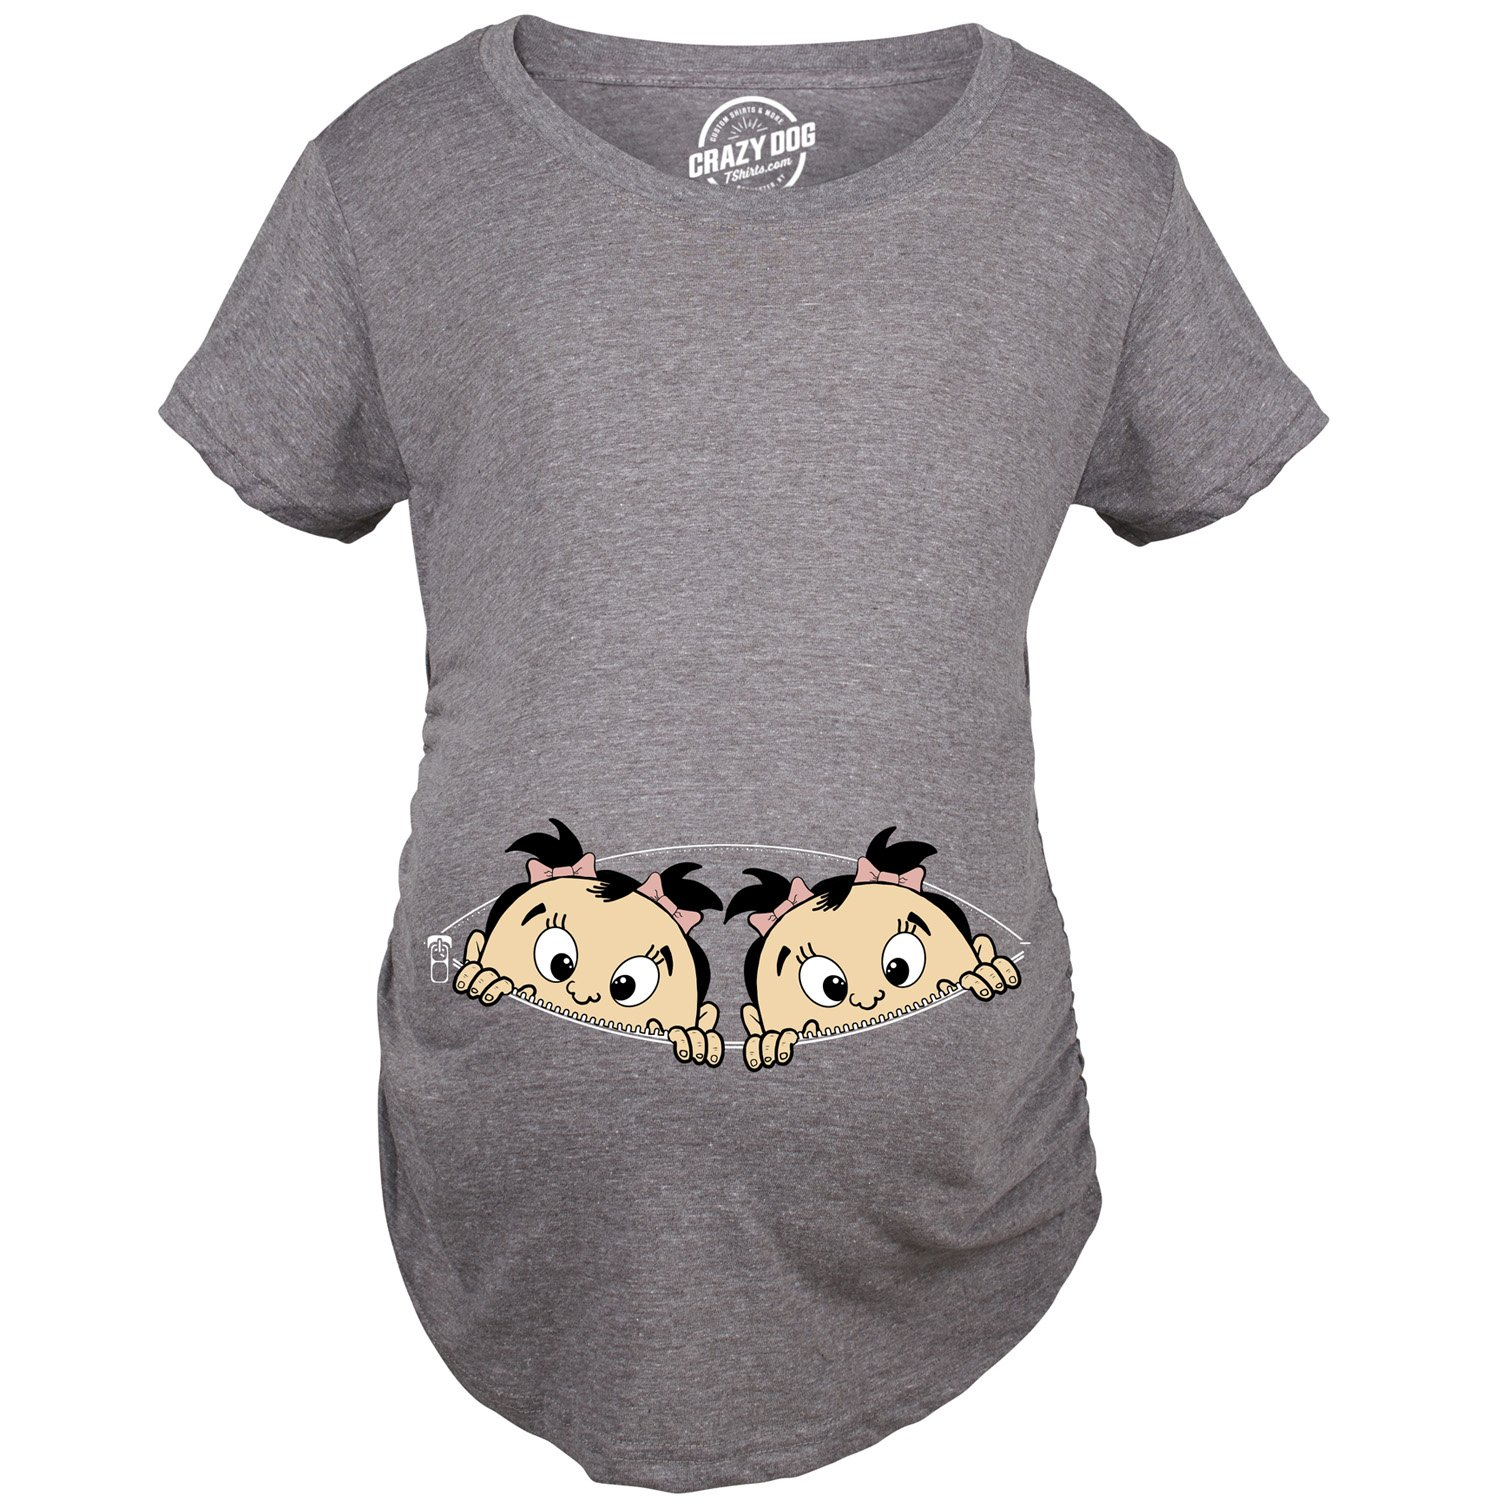 Crazy Dog T-Shirts Maternity Peeking Twin Girls Tshirt Cute Adorable Pregnancy Tee for Mom to Be -L